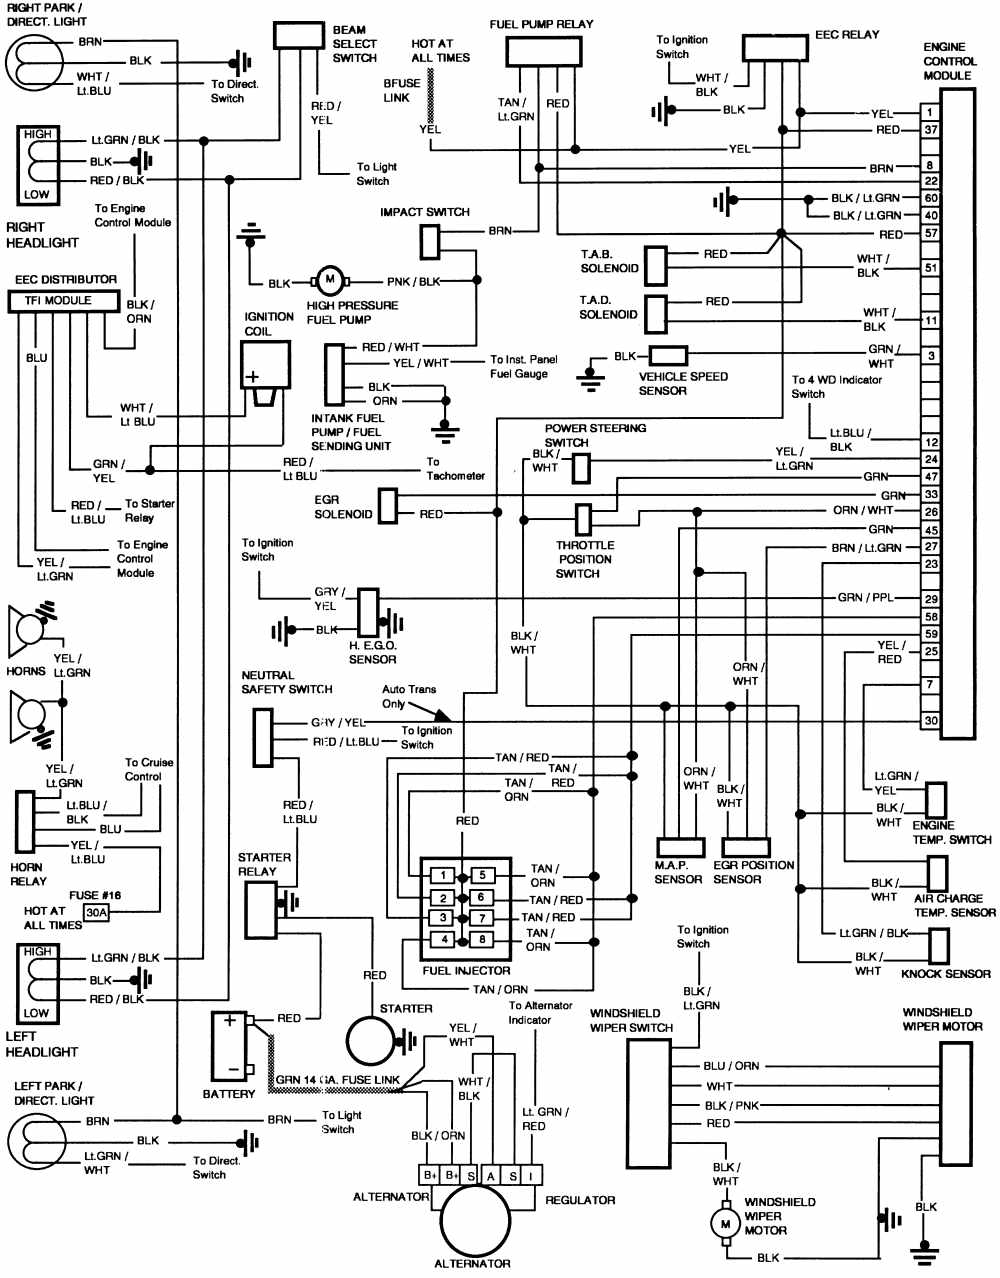 2005 Mitsubishi Montero 3 8l Serpentine Belt Diagram together with Ford E 150 Engine Diagram in addition 91 Dodge Ram W250 Wiring Diagram furthermore 88 Ford Bronco Ignition Power Wiring Diagram further 577617 How Can I Tell If I Have Ballast Resistor Ignition Wire. on 89 ford ranger fuse box diagram